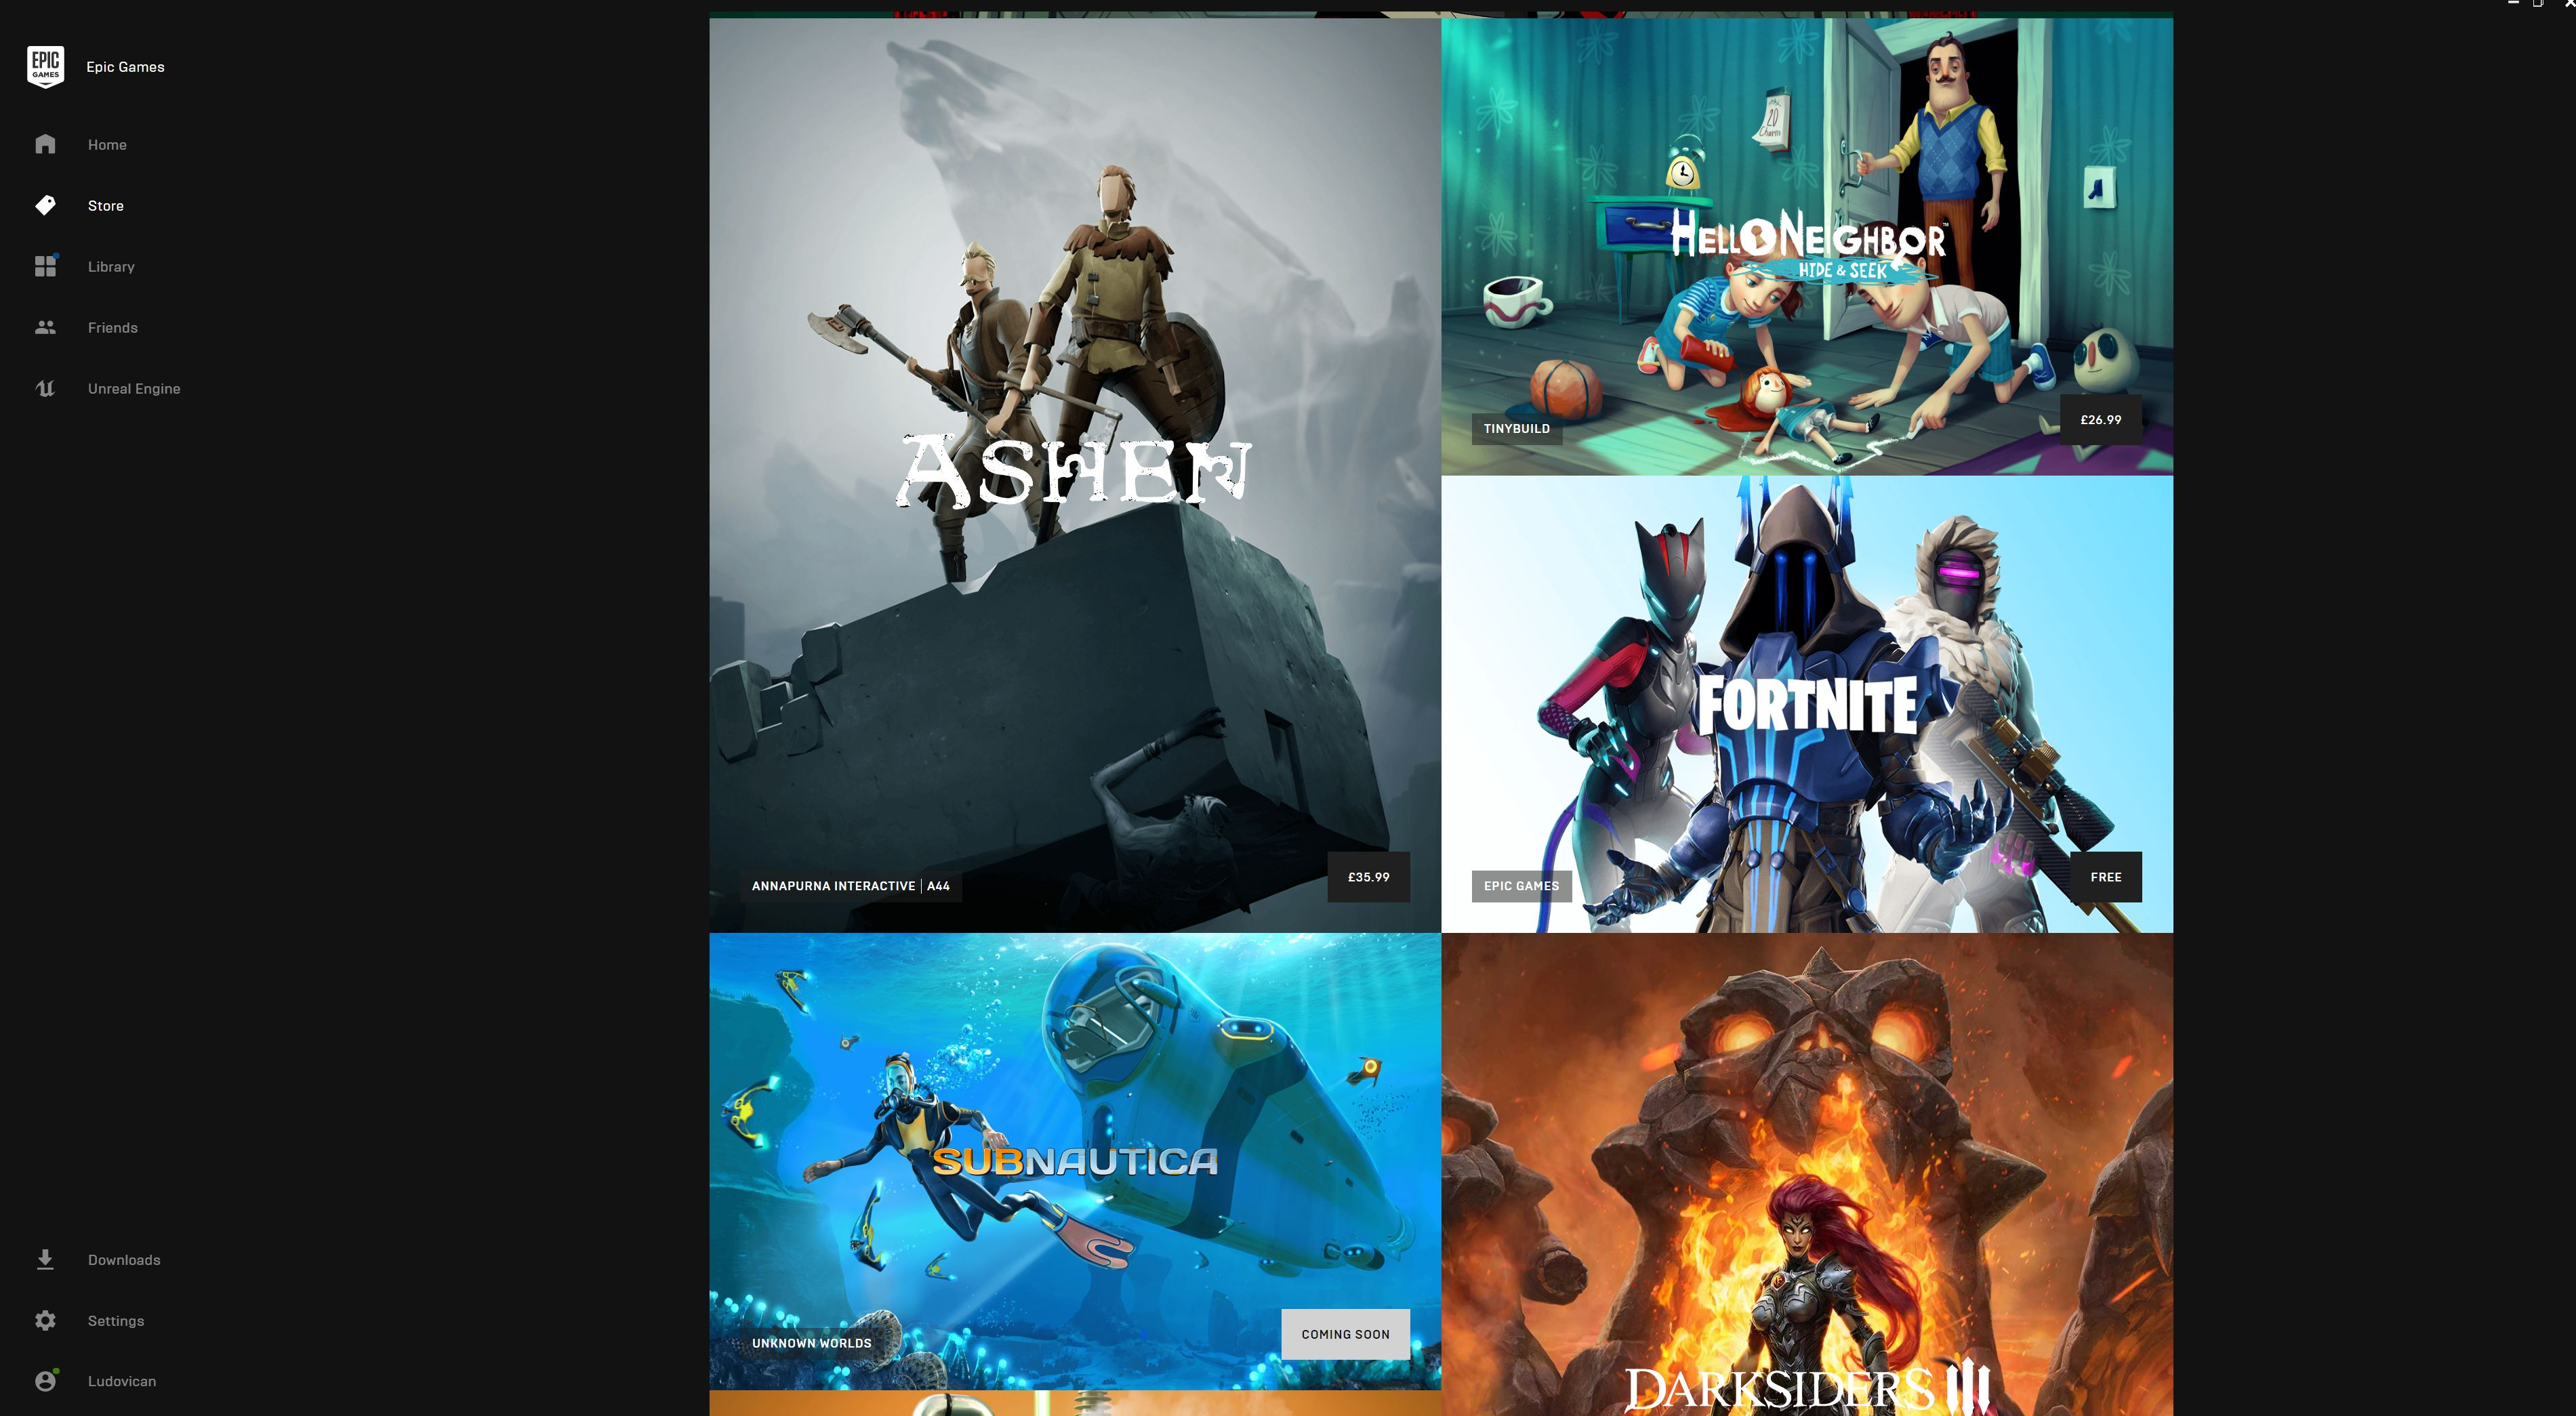 40 percent of Epic Games Store users say they don't have